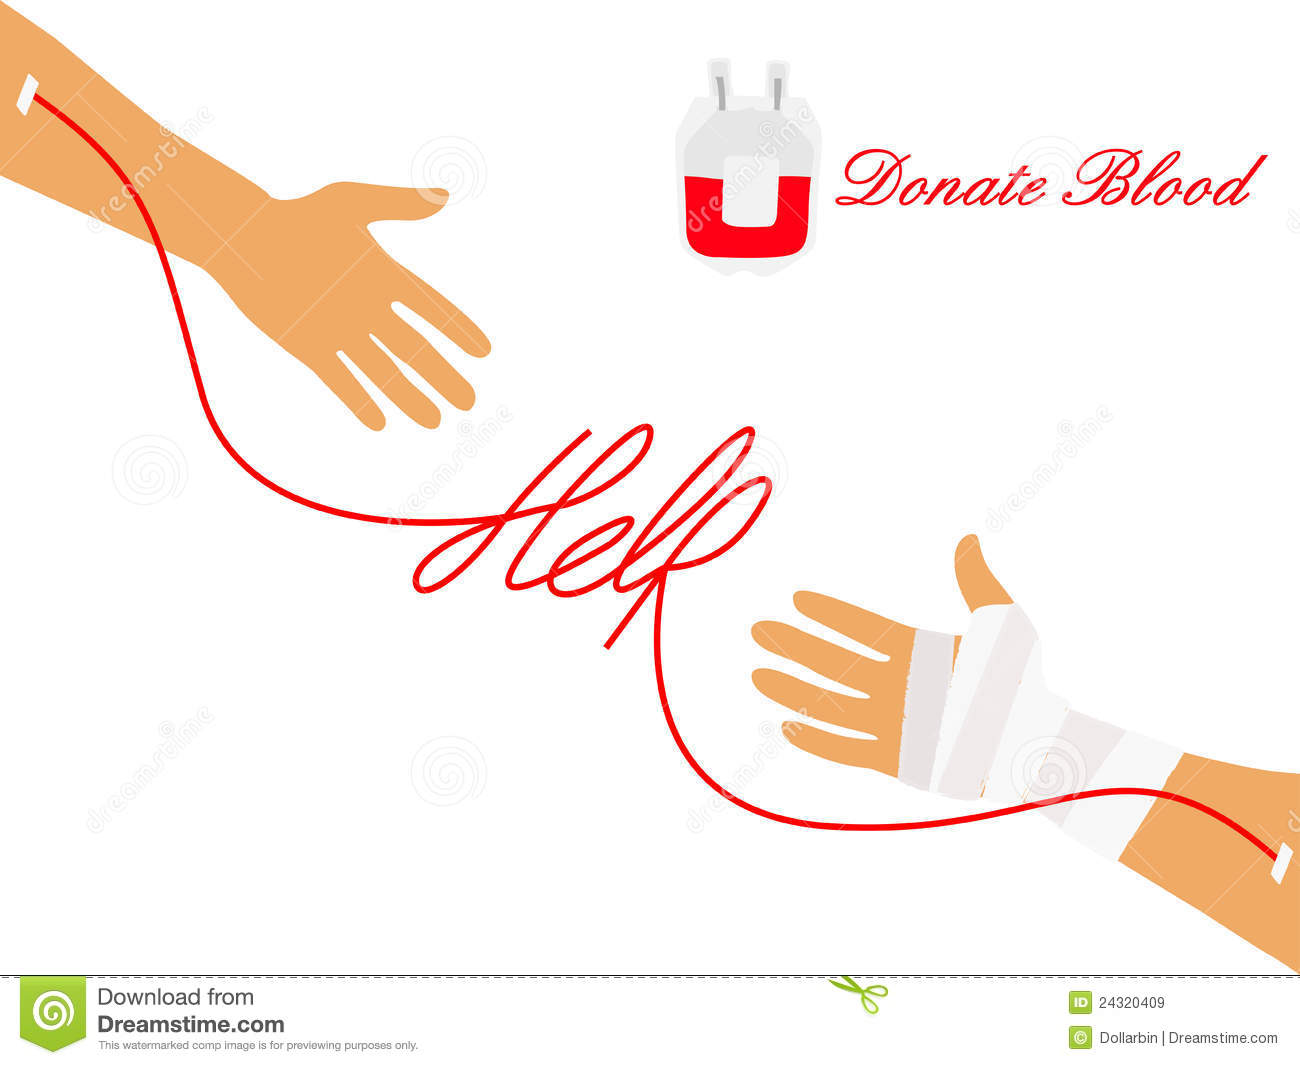 health care market blood donation